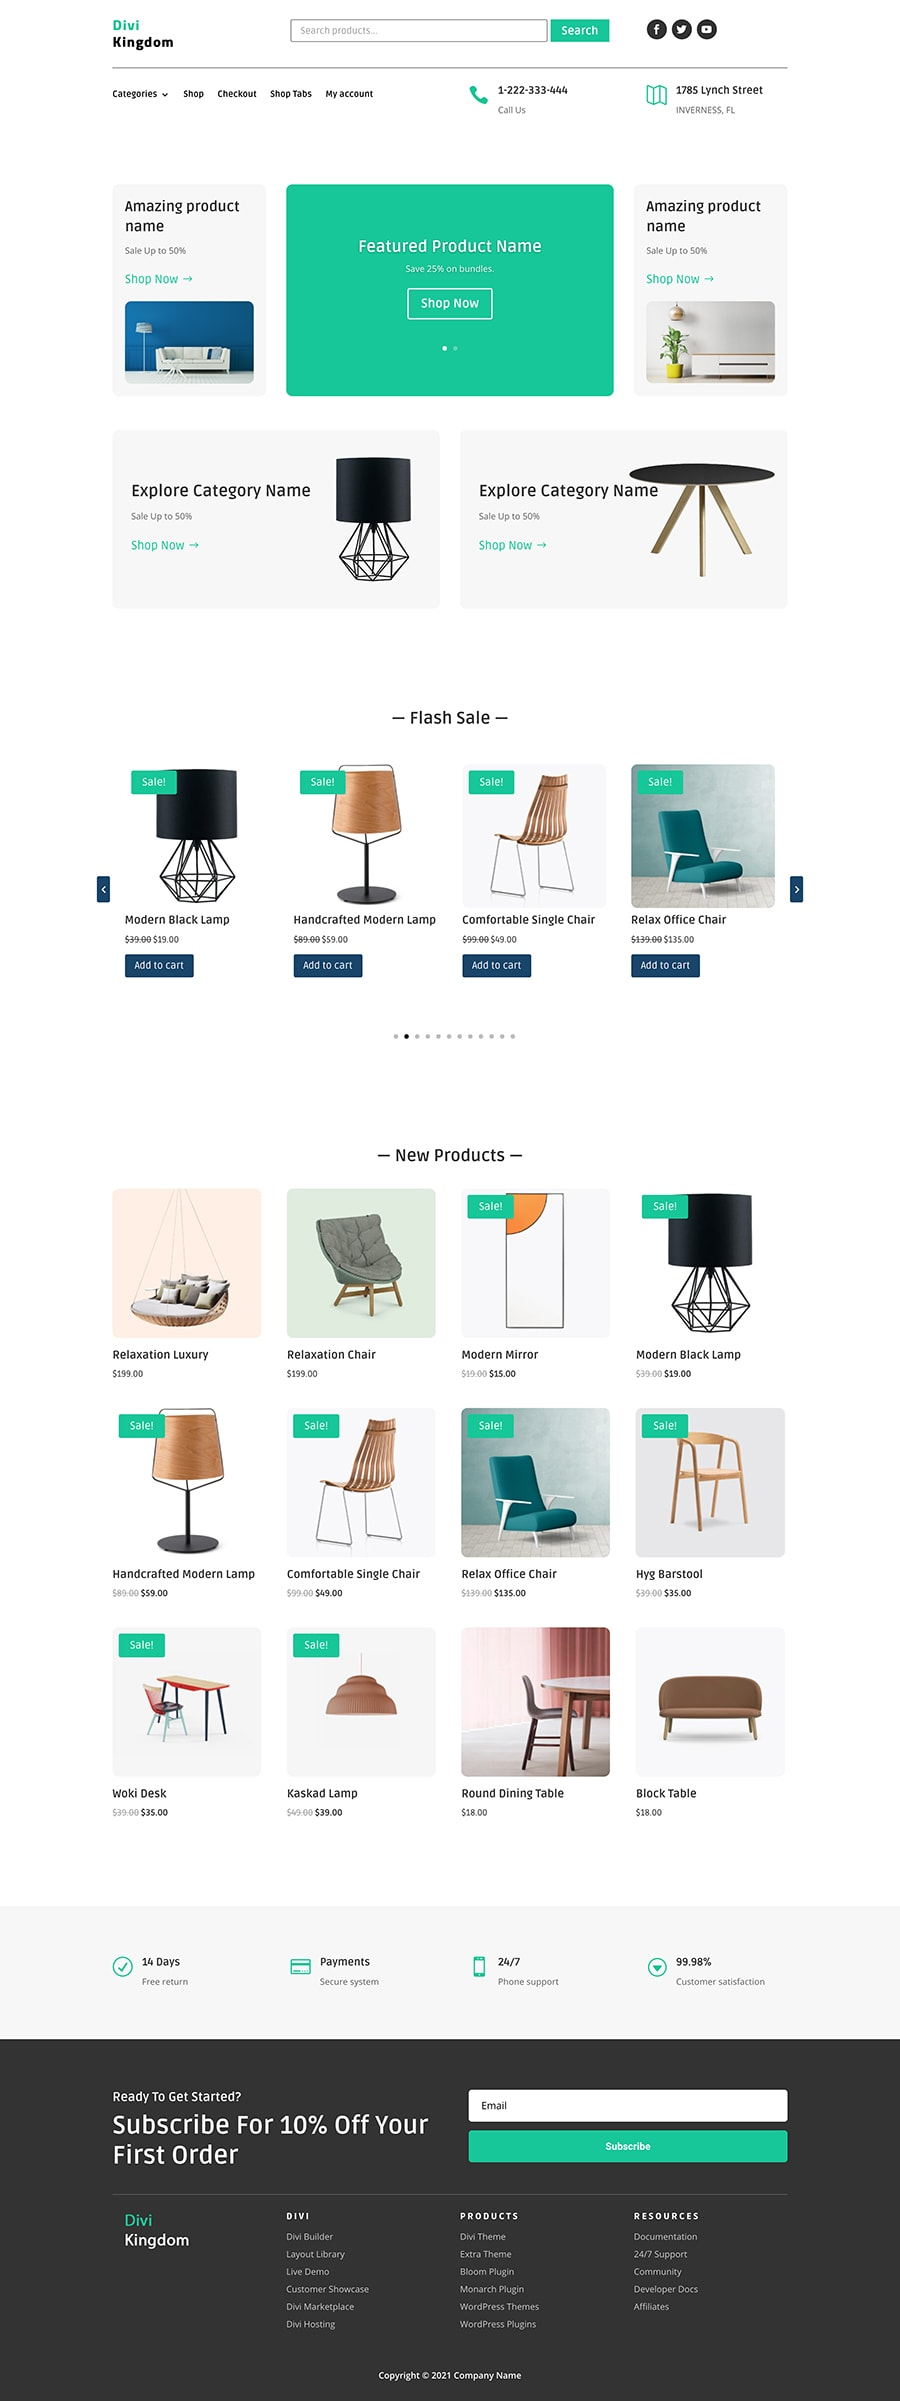 WooCommerce product carousel module for Divi